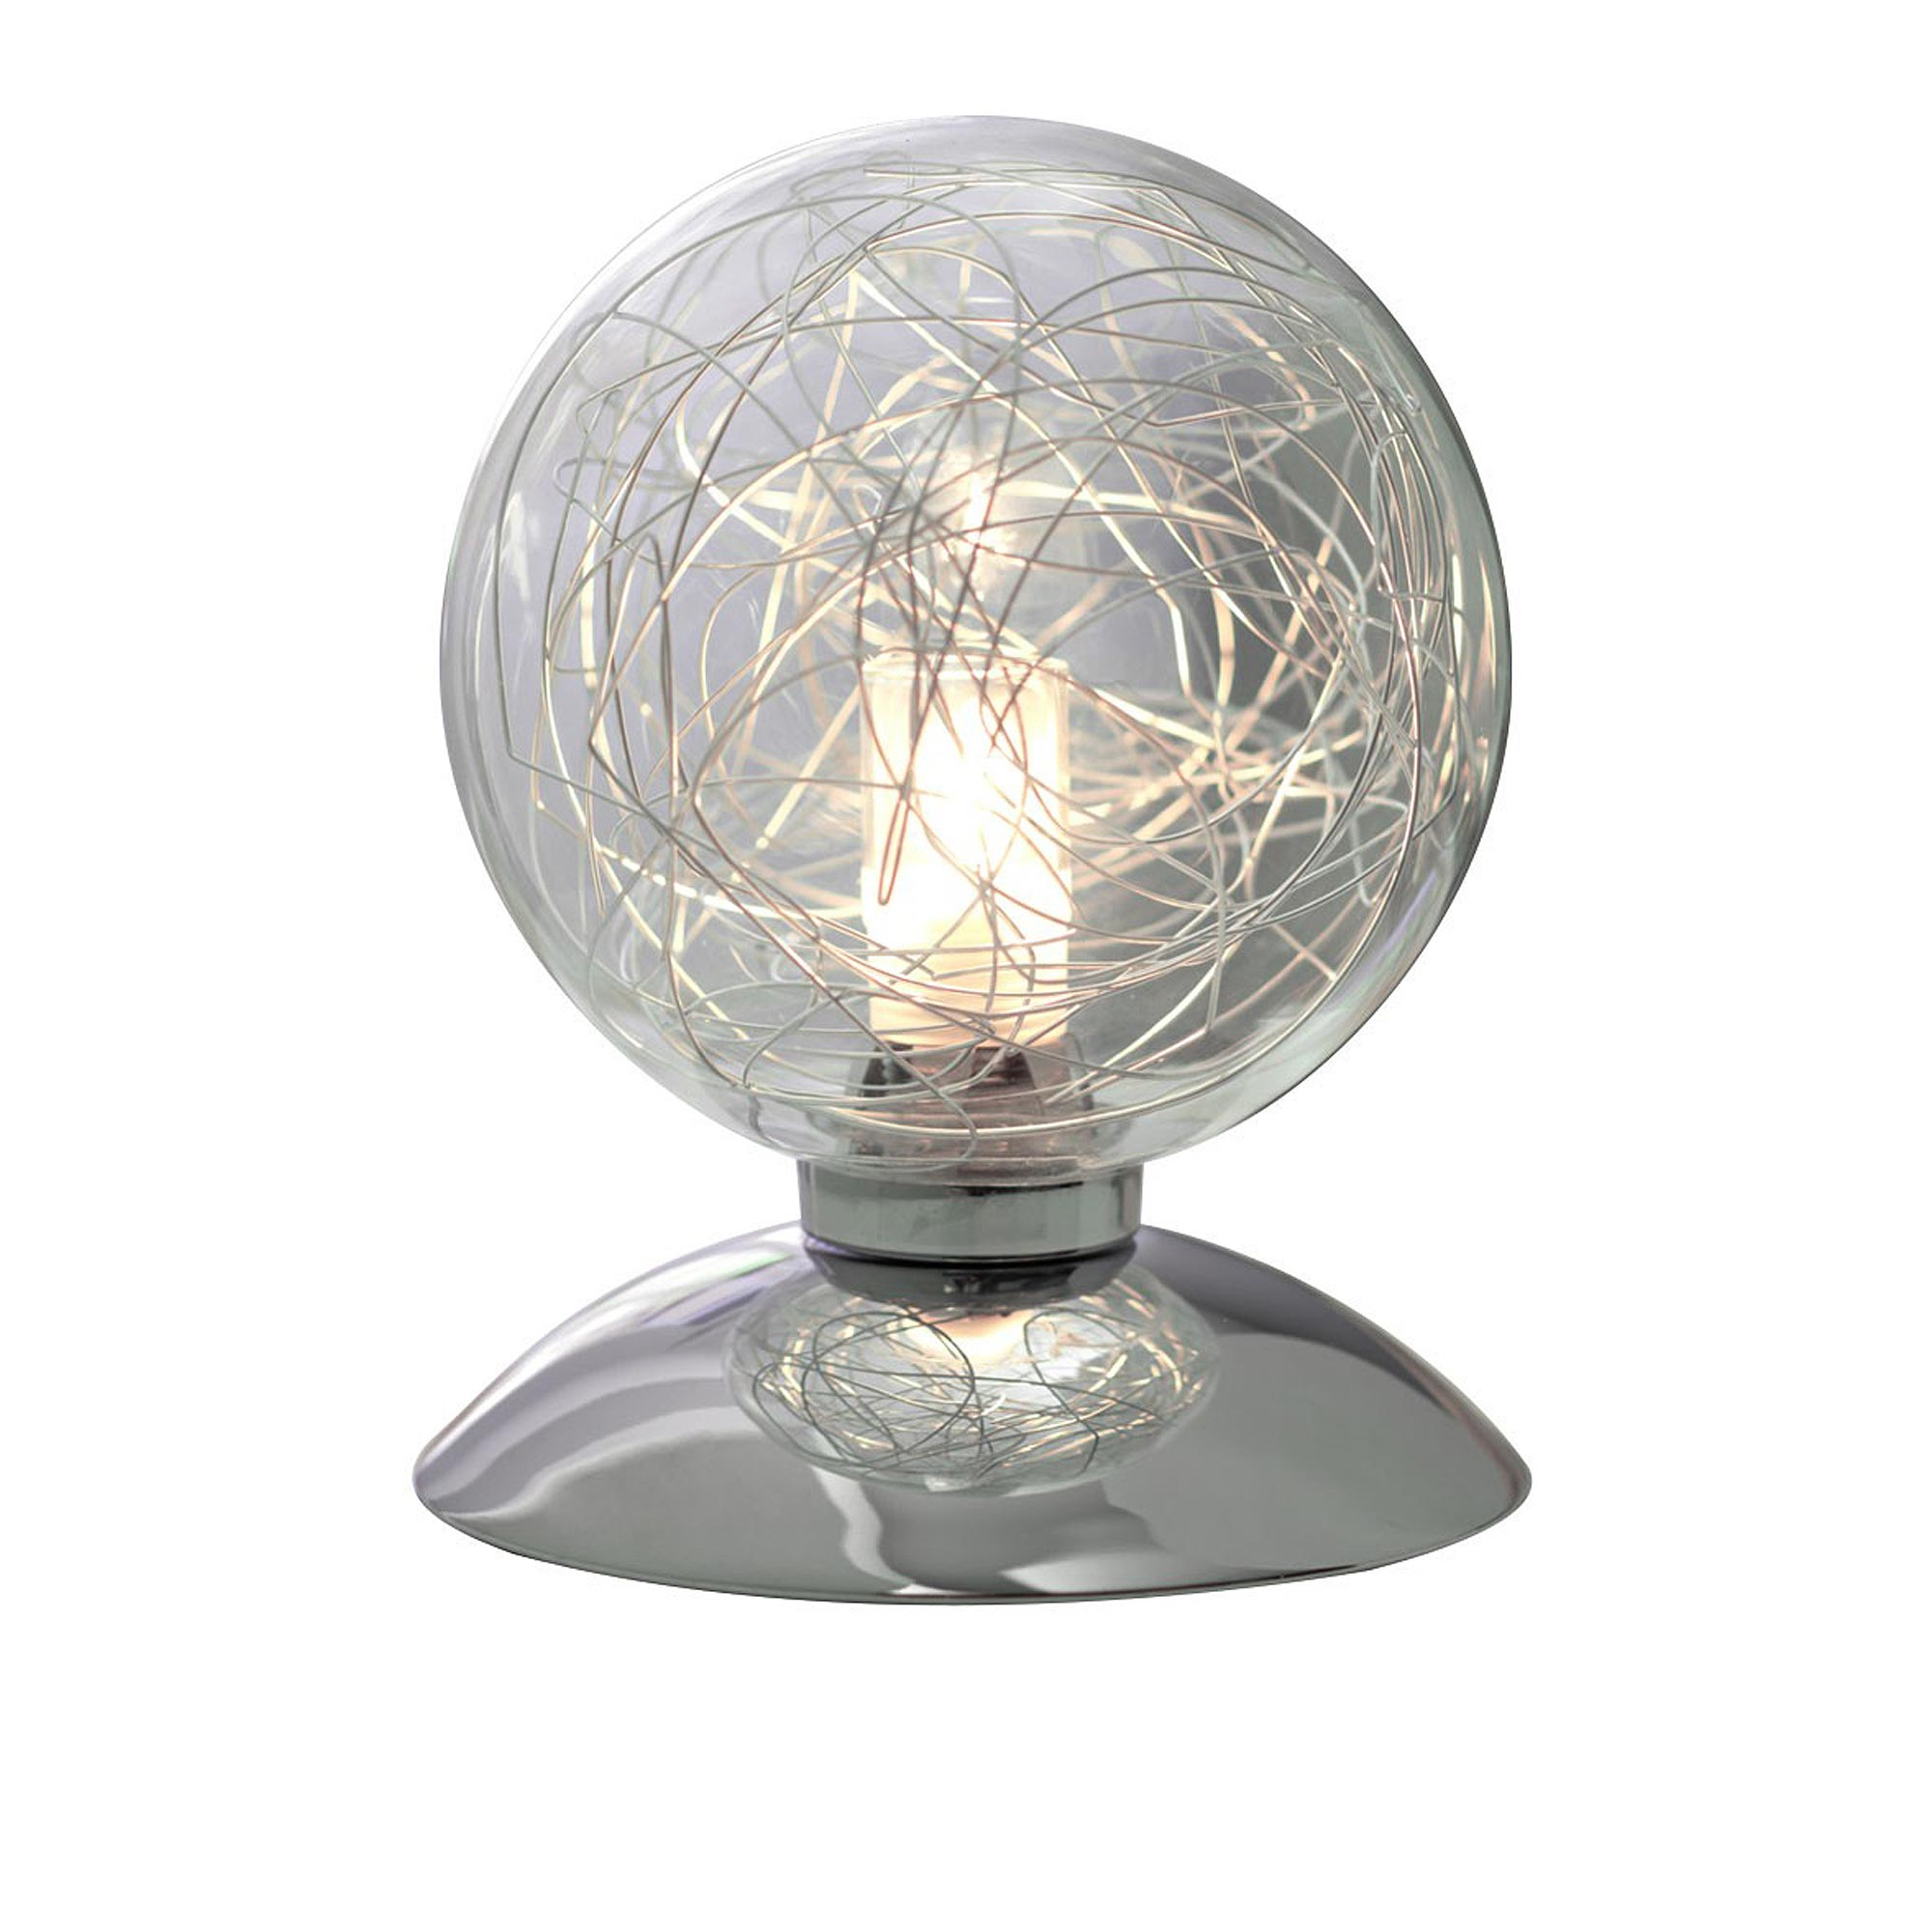 wofi lampe de table verre chrome 1 flg boule en interrupteur 33 watts 460 lumen ebay. Black Bedroom Furniture Sets. Home Design Ideas